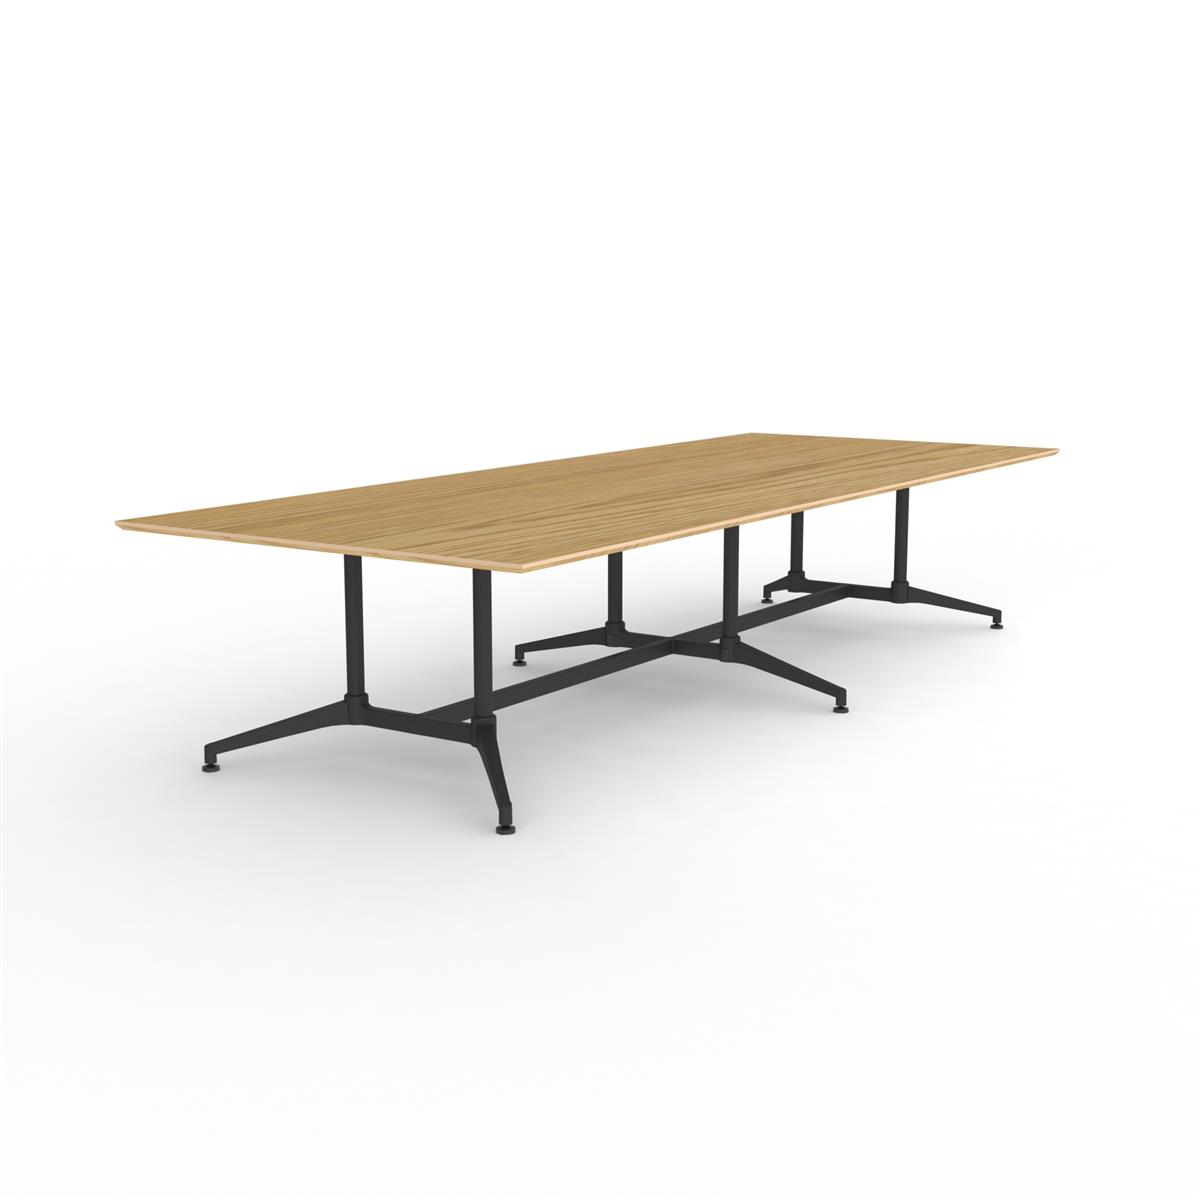 X1 Seamless Table 360 x 140 - eikefinér & sort